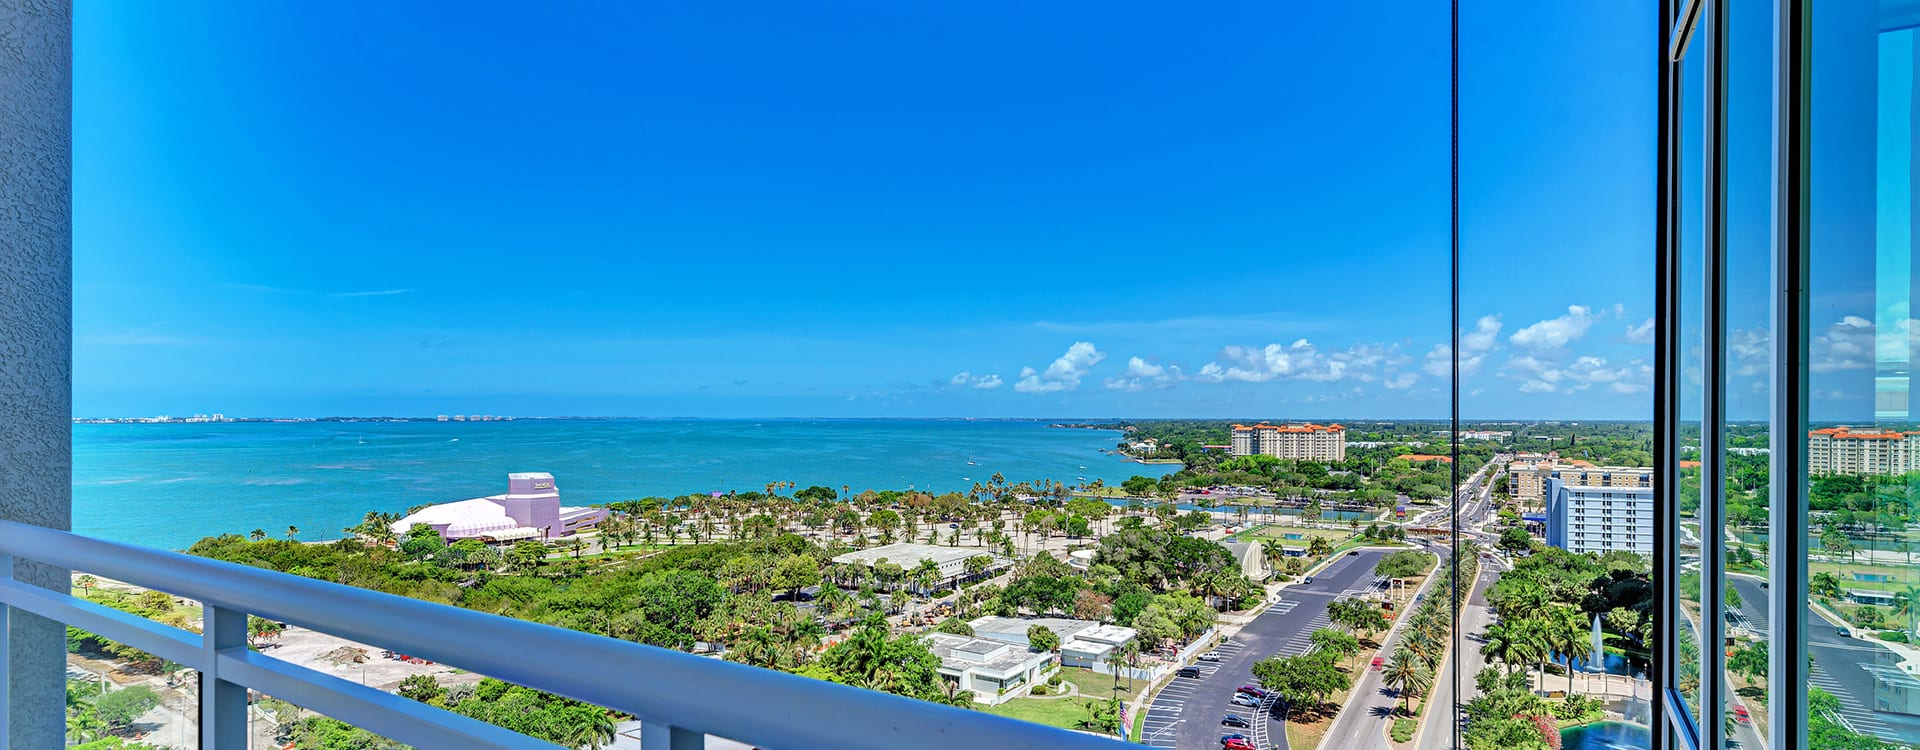 gulf of mexico views from BLVD Sarasota Residence 1603 terrace